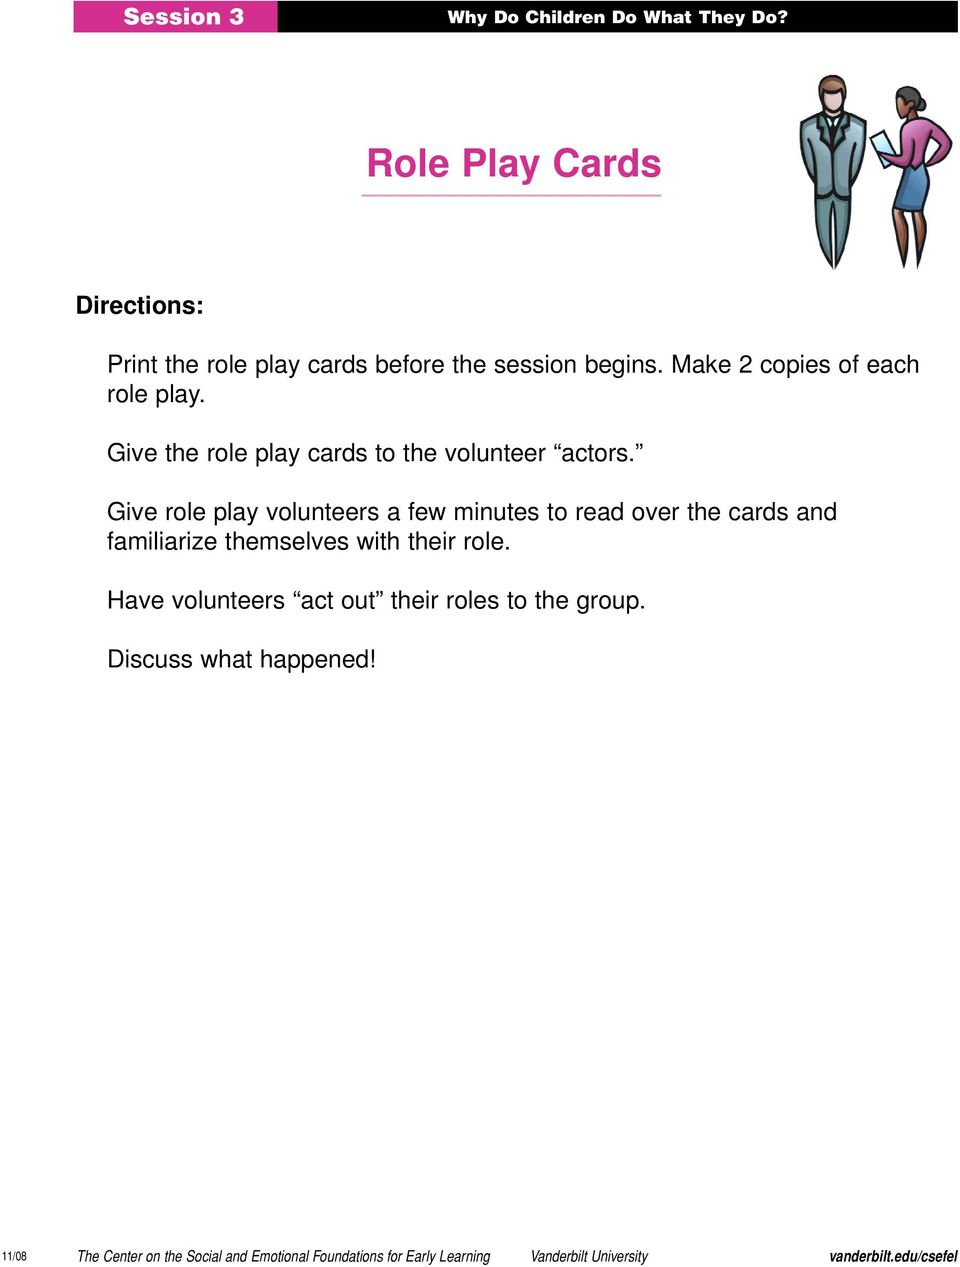 Give role play volunteers a few minutes to read over the cards and familiarize